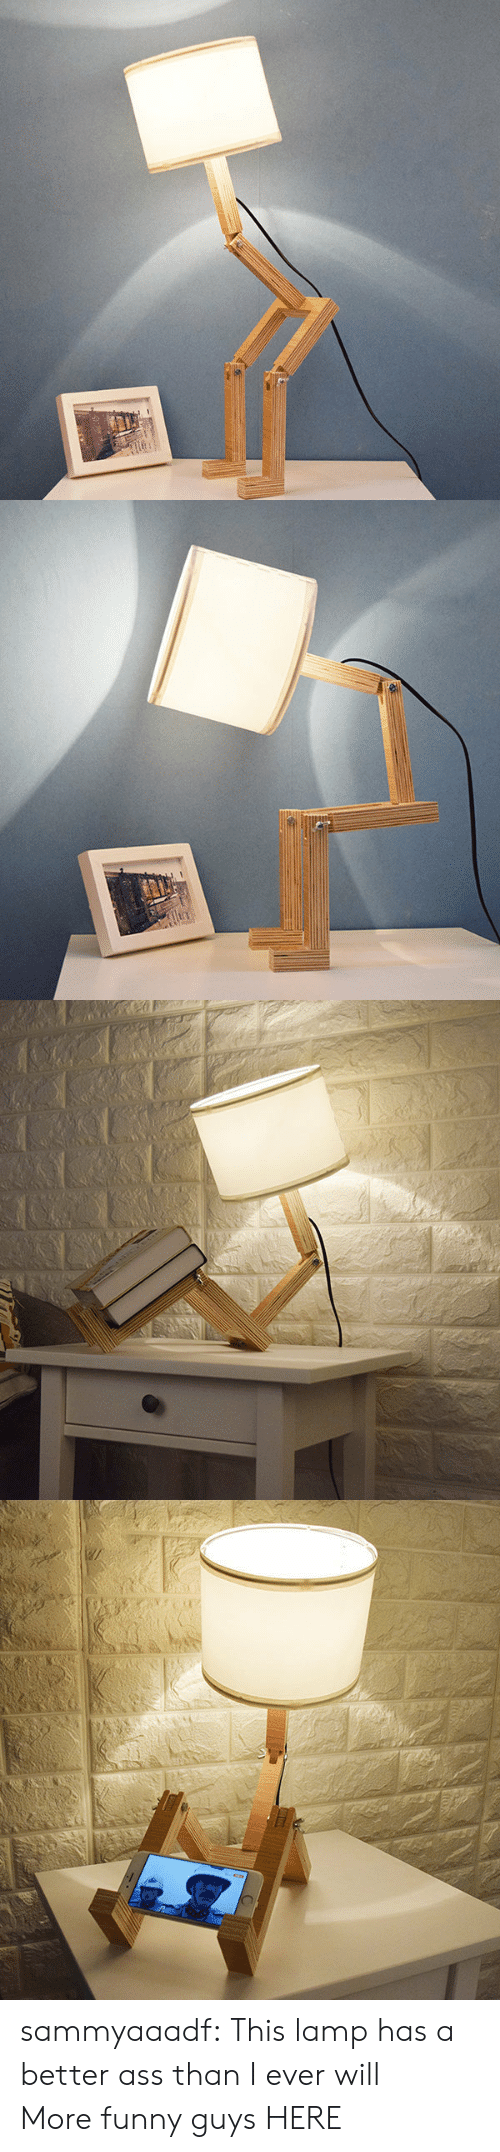 More Funny: 130C sammyaaadf: This lamp has a better ass than I ever will:) More funny guys HERE